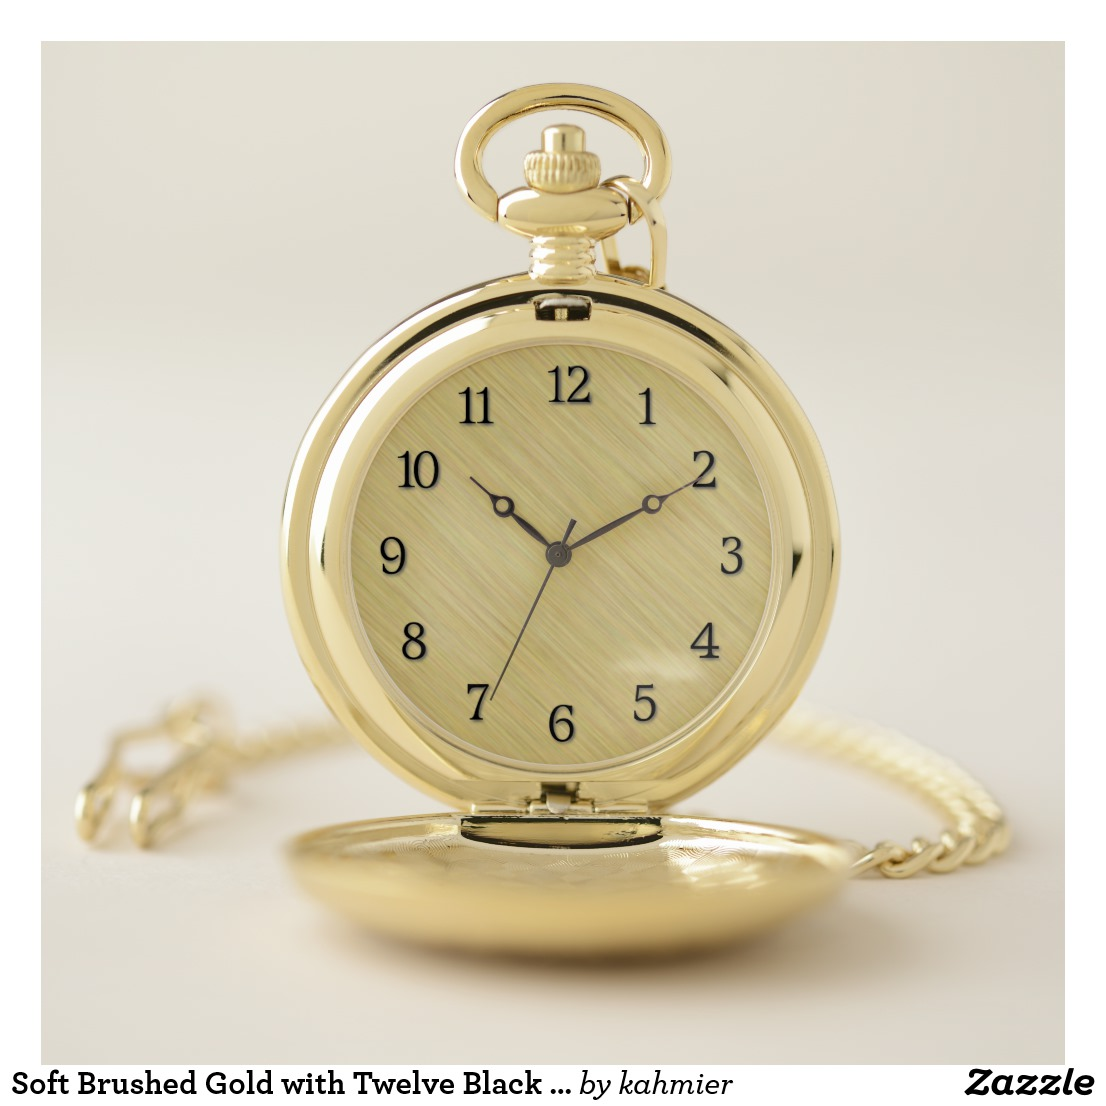 Soft Brushed Gold with Twelve Black Numbers Pocket Watch